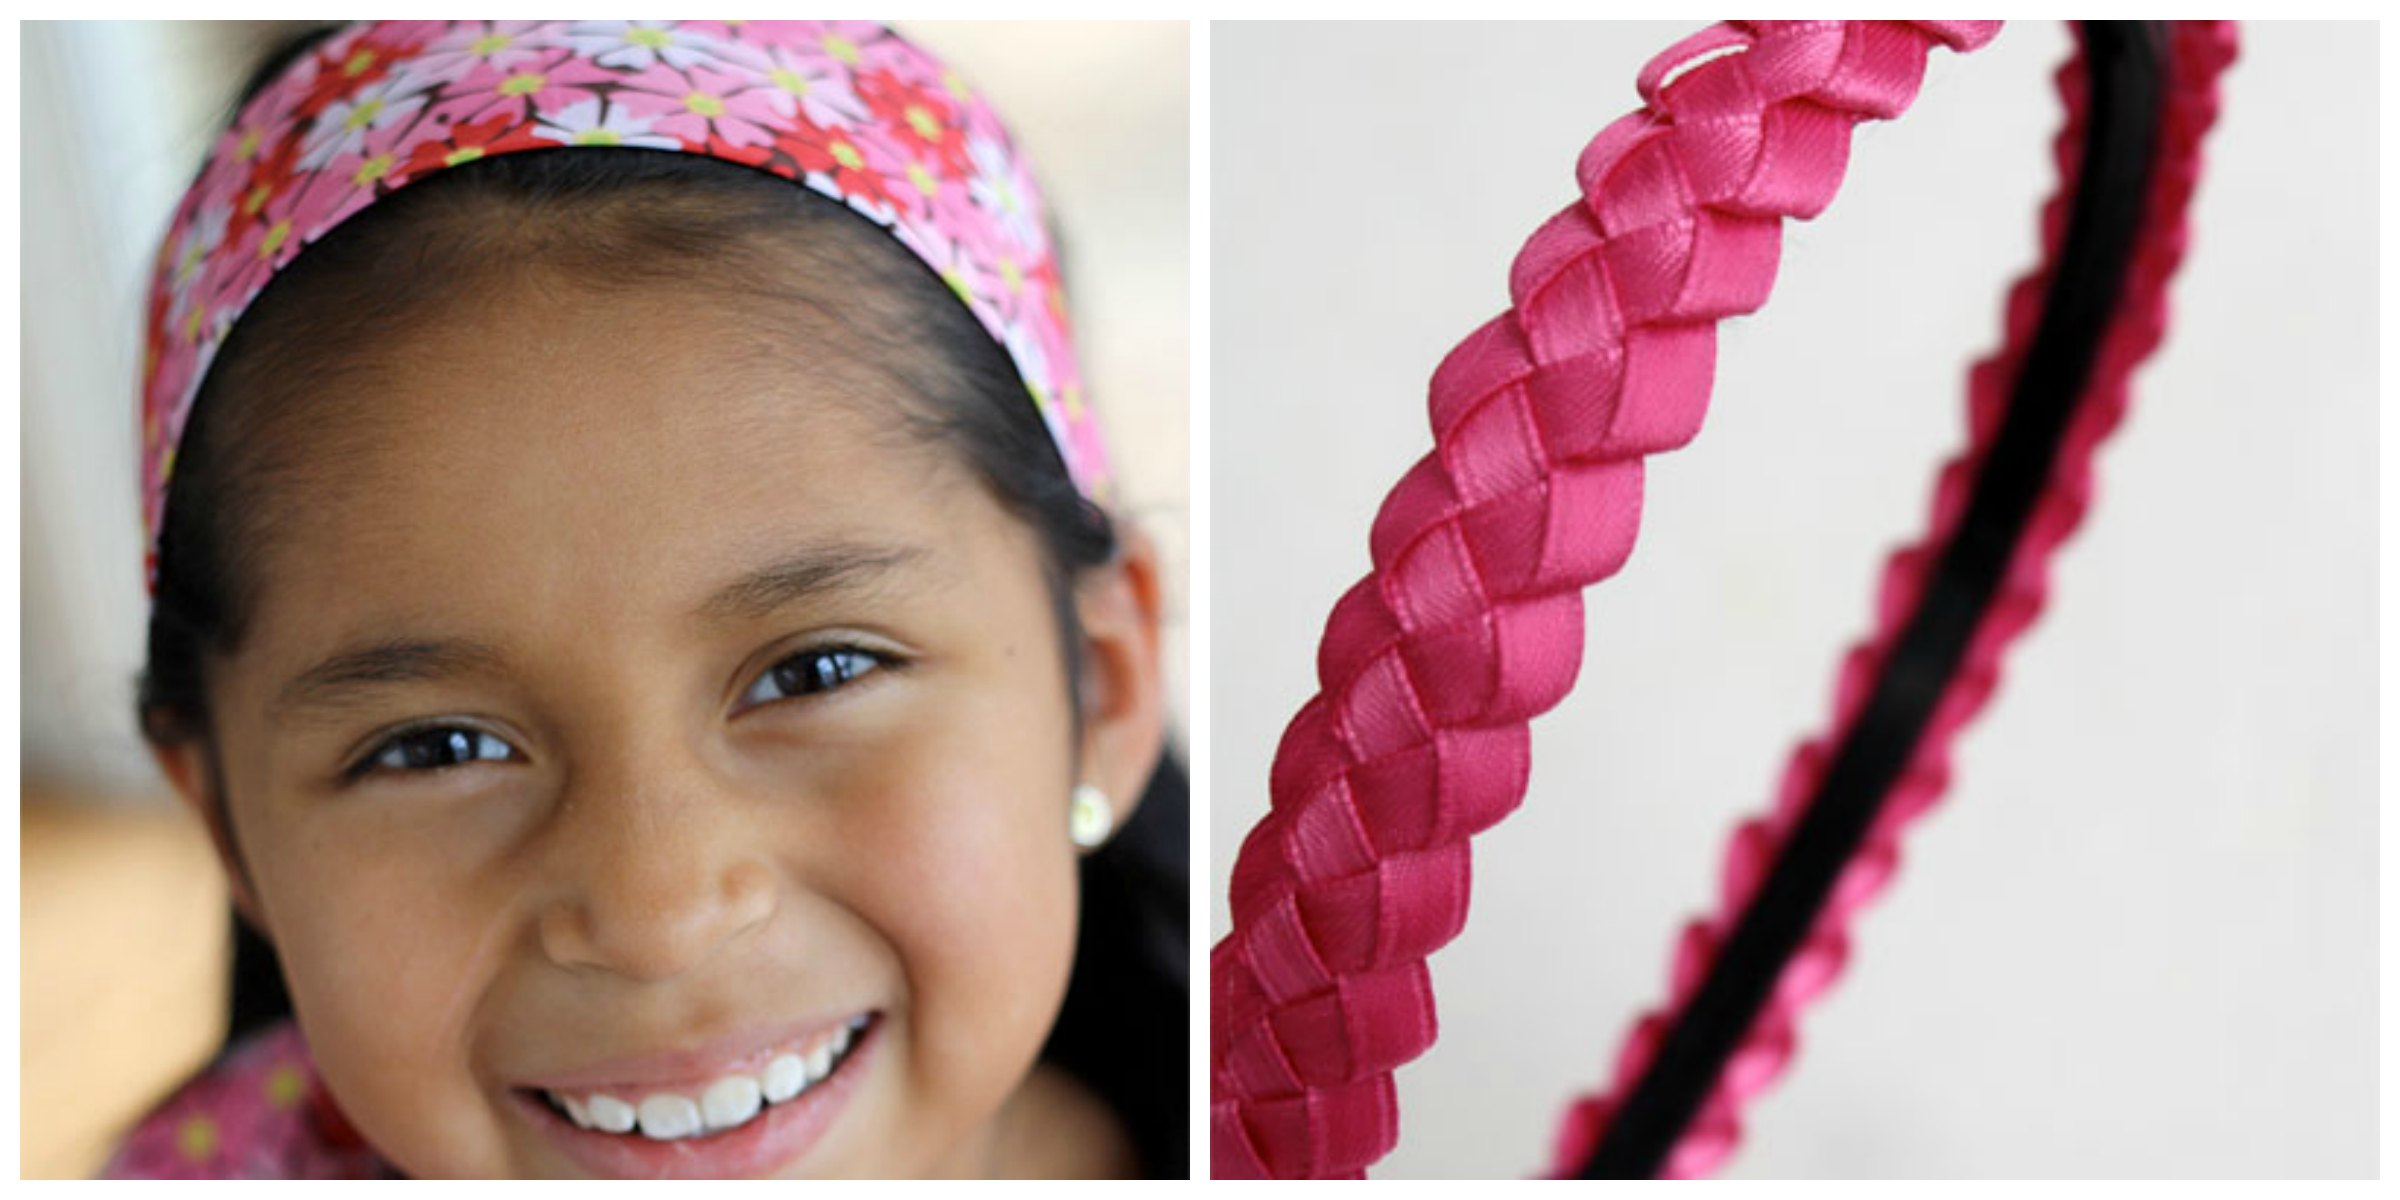 Find great deals on eBay for children headbands. Shop with confidence.